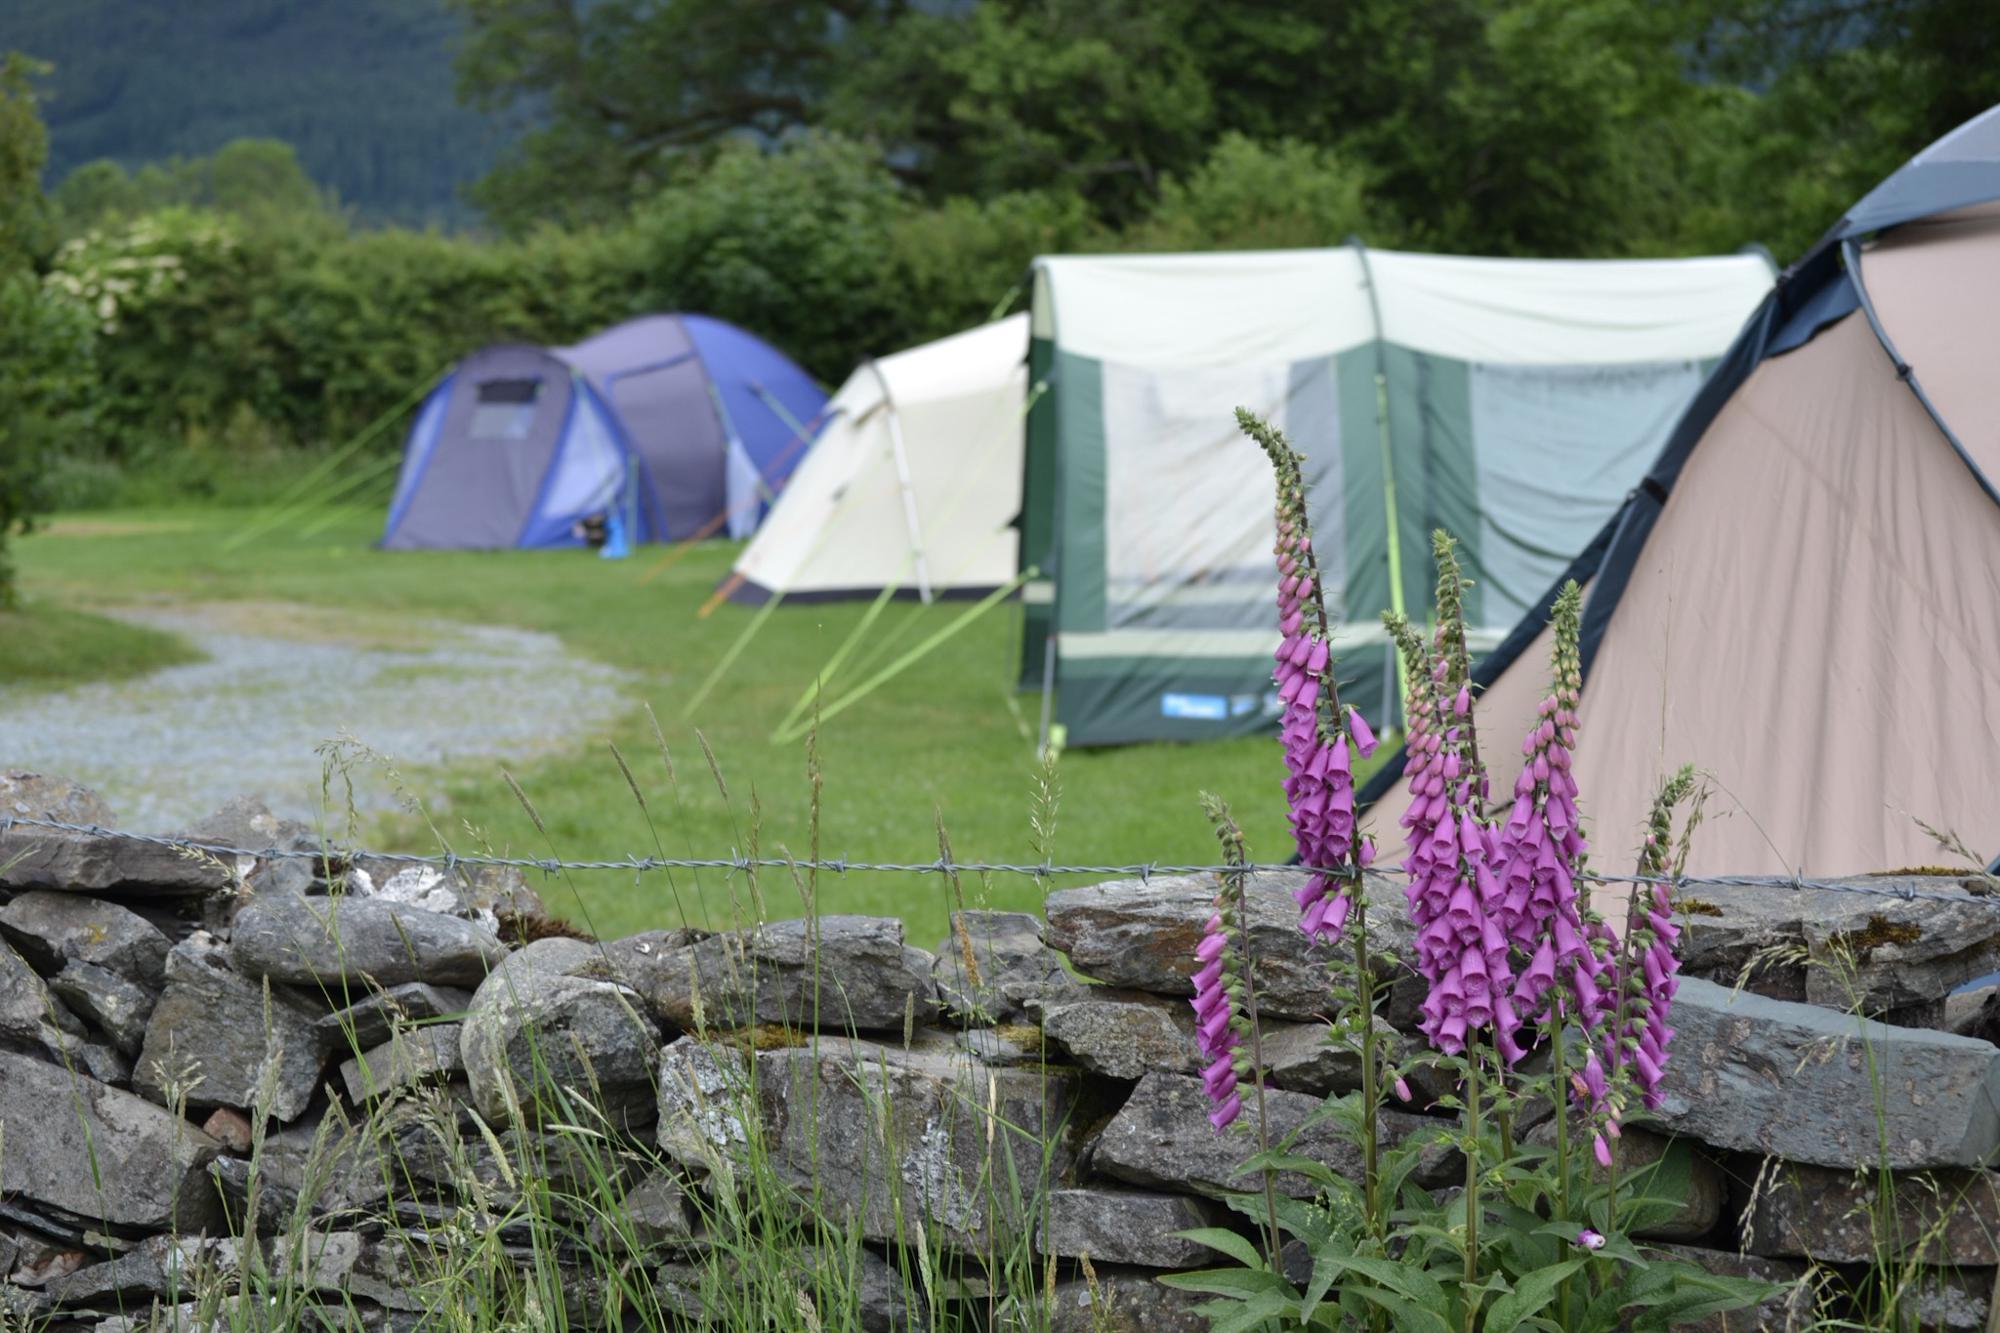 Lanefoot Farm Campsite, Lake District